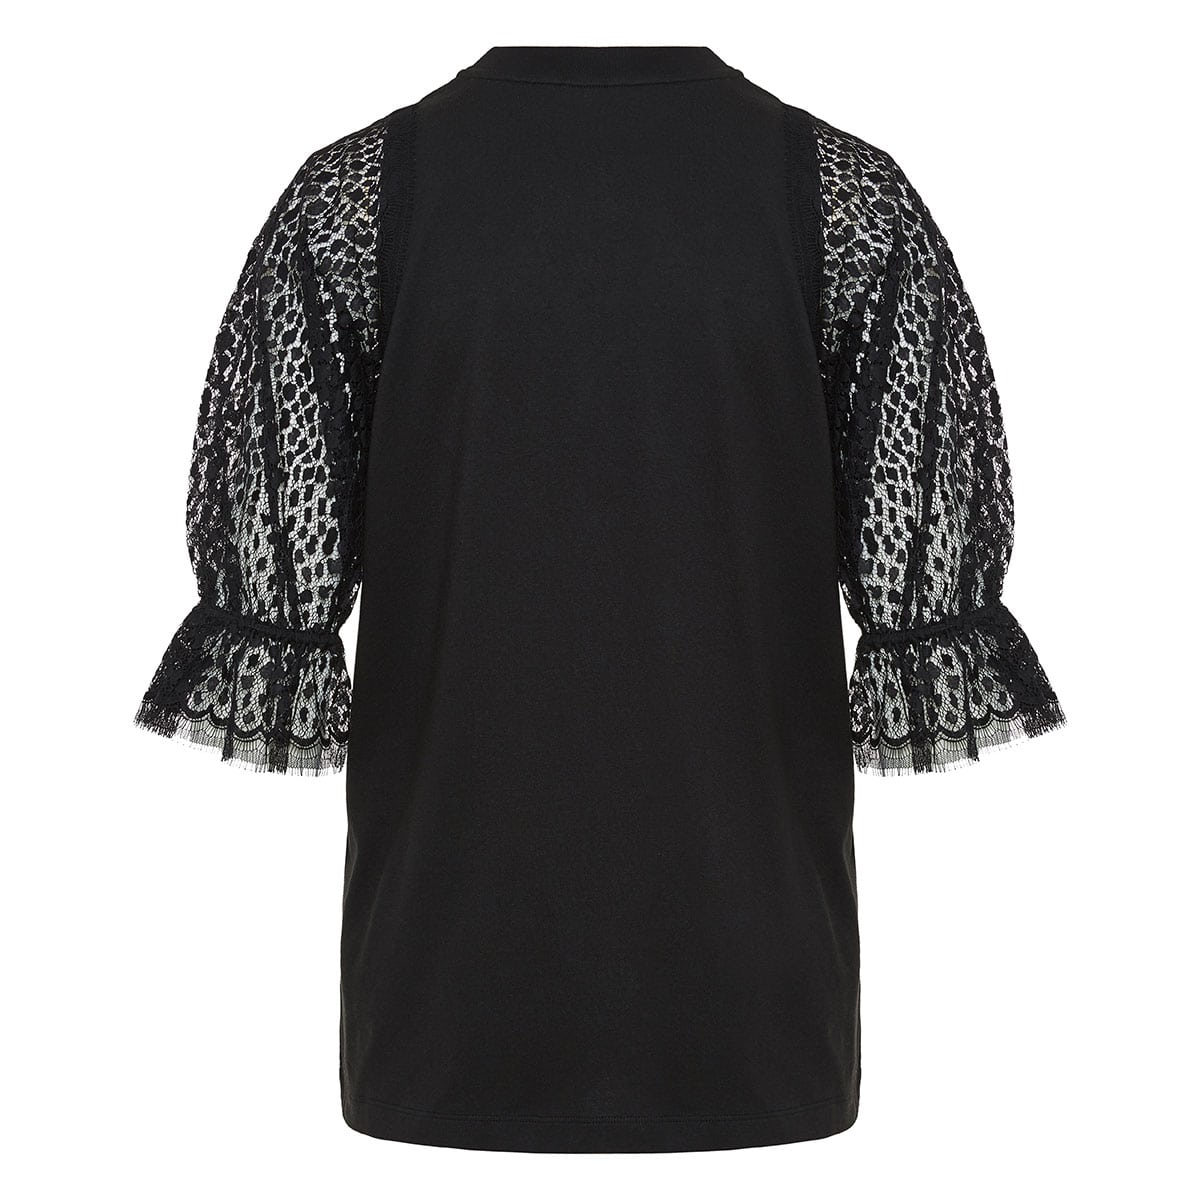 Lace-sleeved cotton top